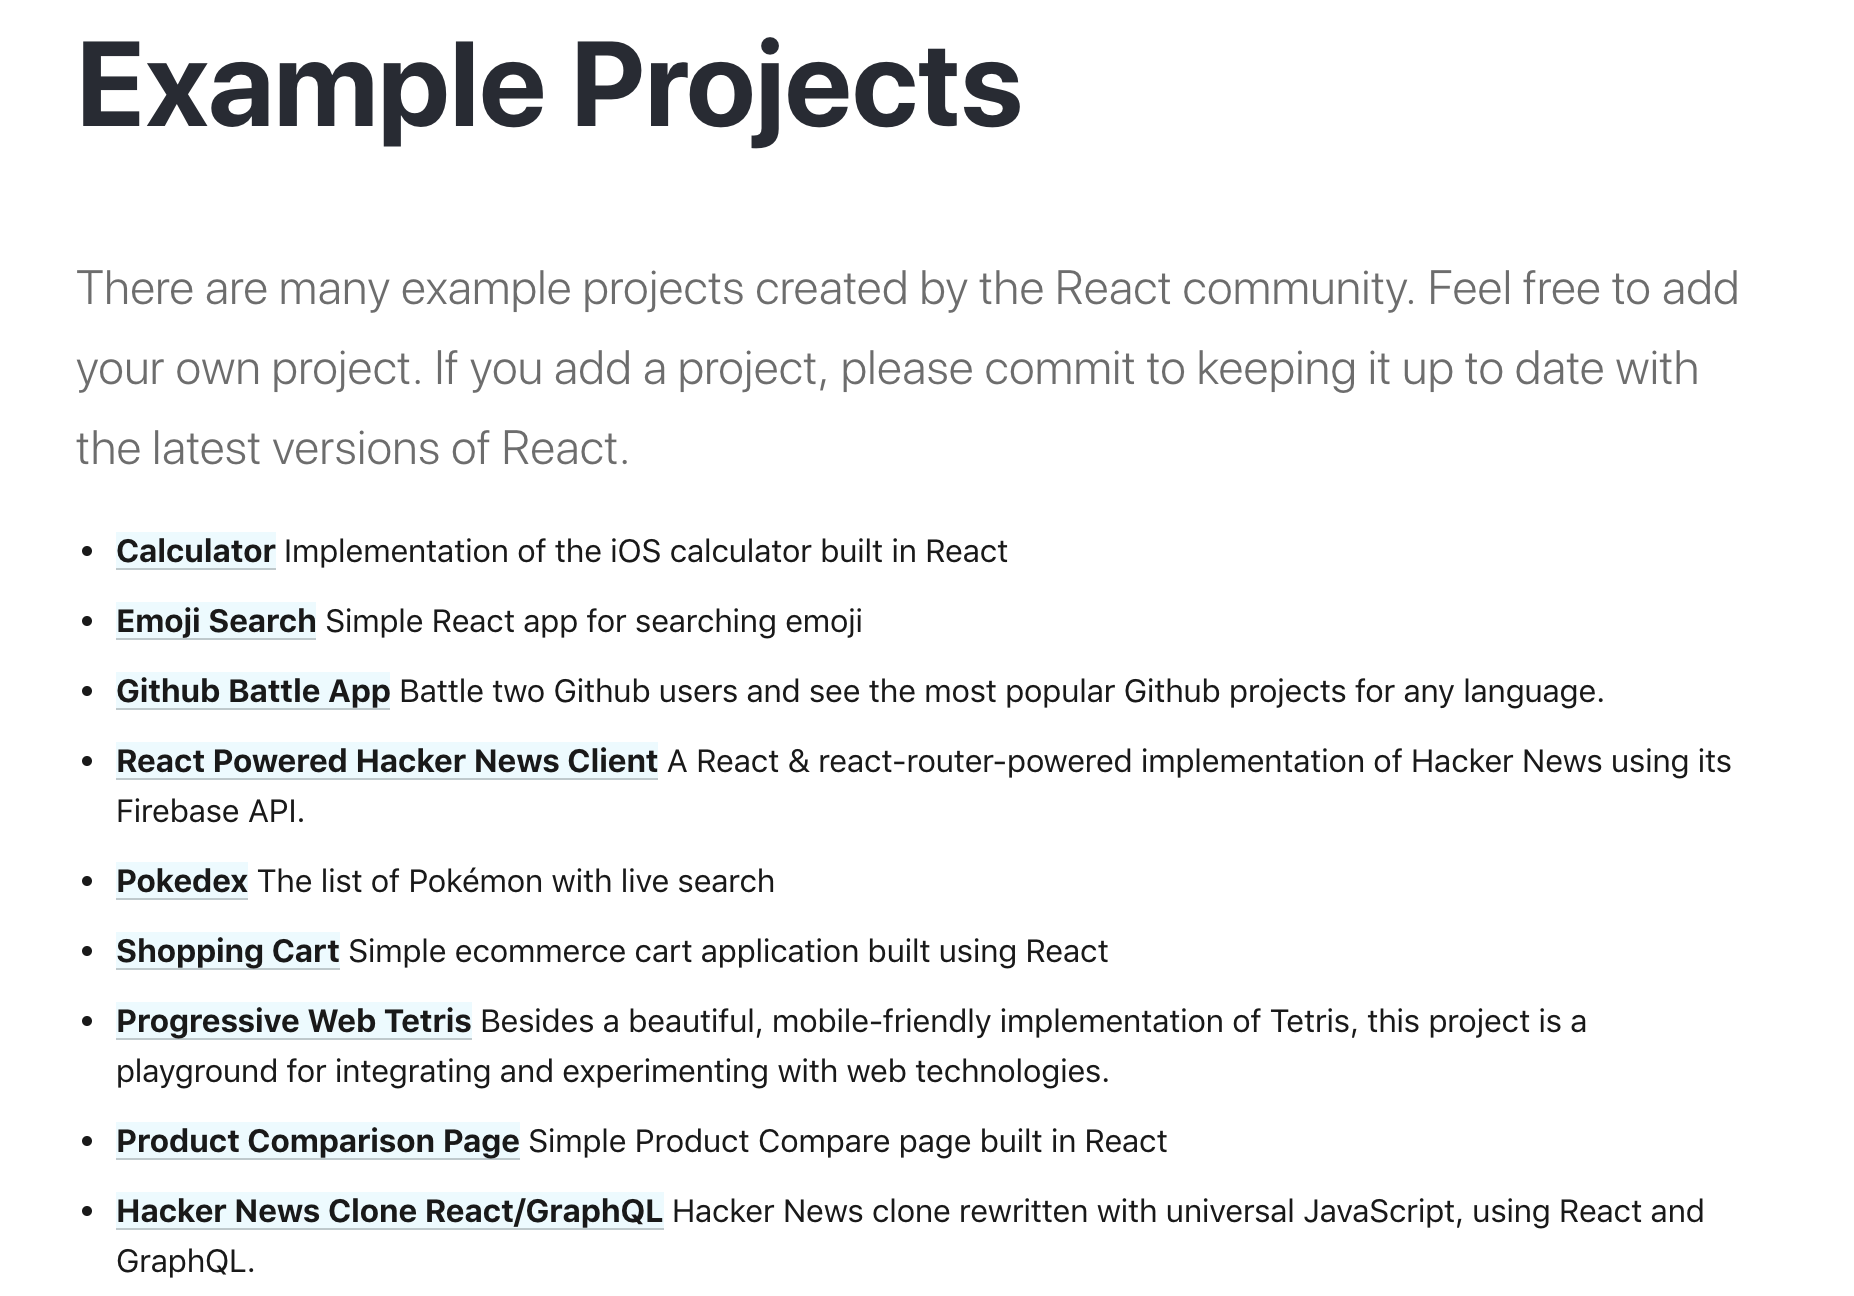 ReactJS.org Project Examples